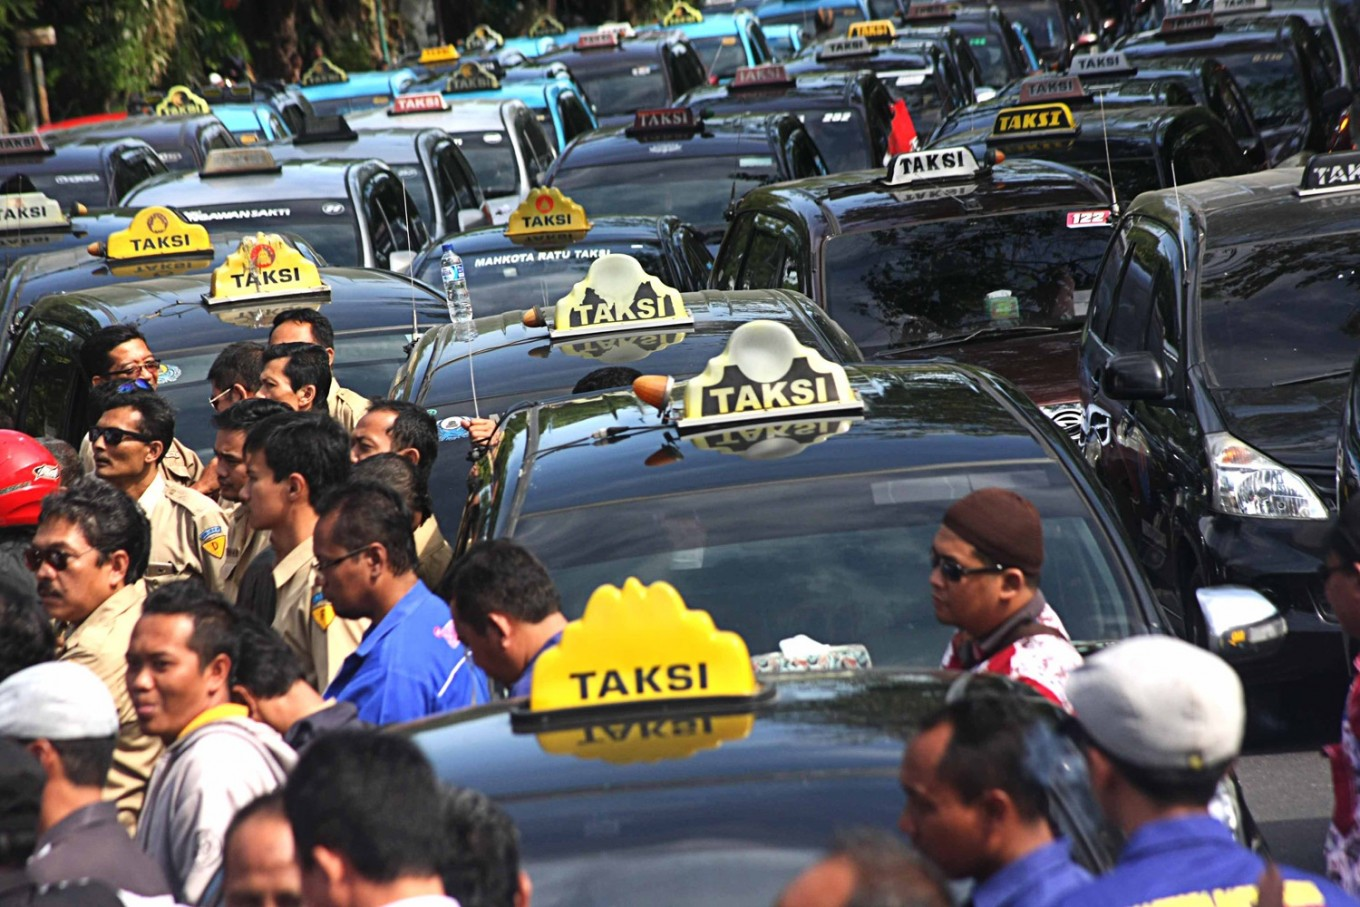 Cab drivers rally to protest ride-hailing apps in Surakarta